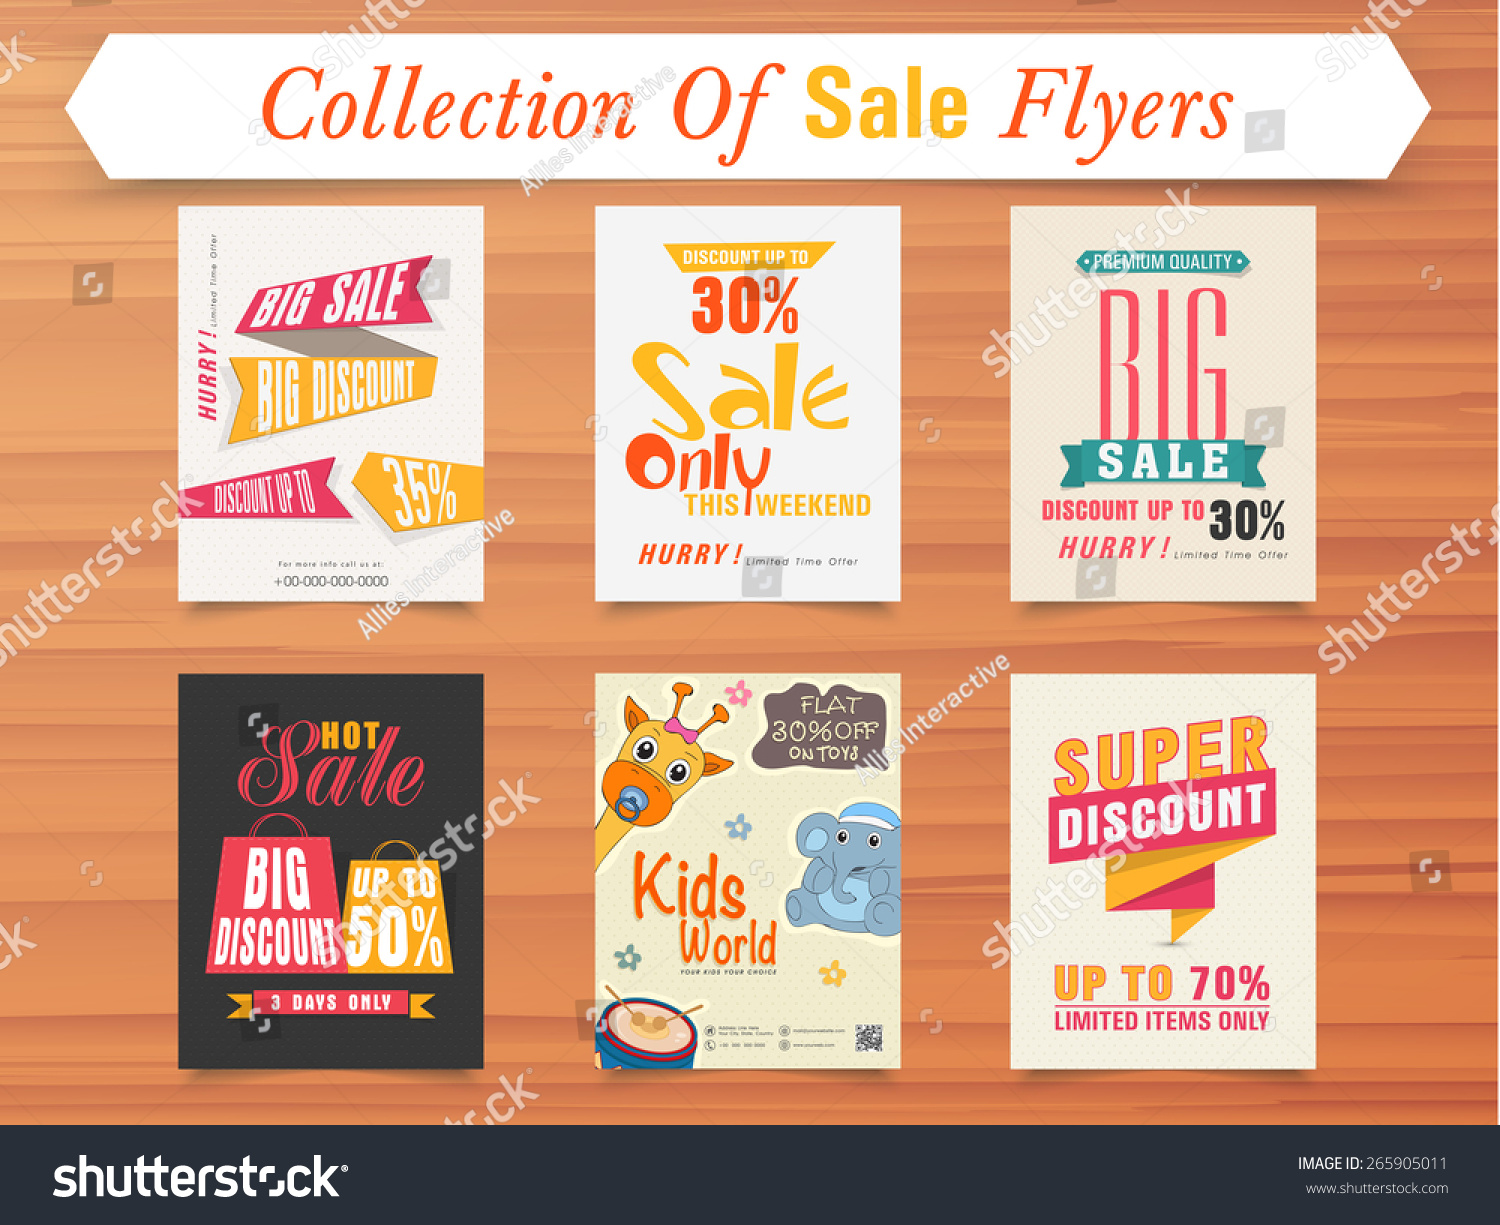 big super discount offer limited stock vector 265905011 big super discount offer for limited time stylish poster or flyer collection on